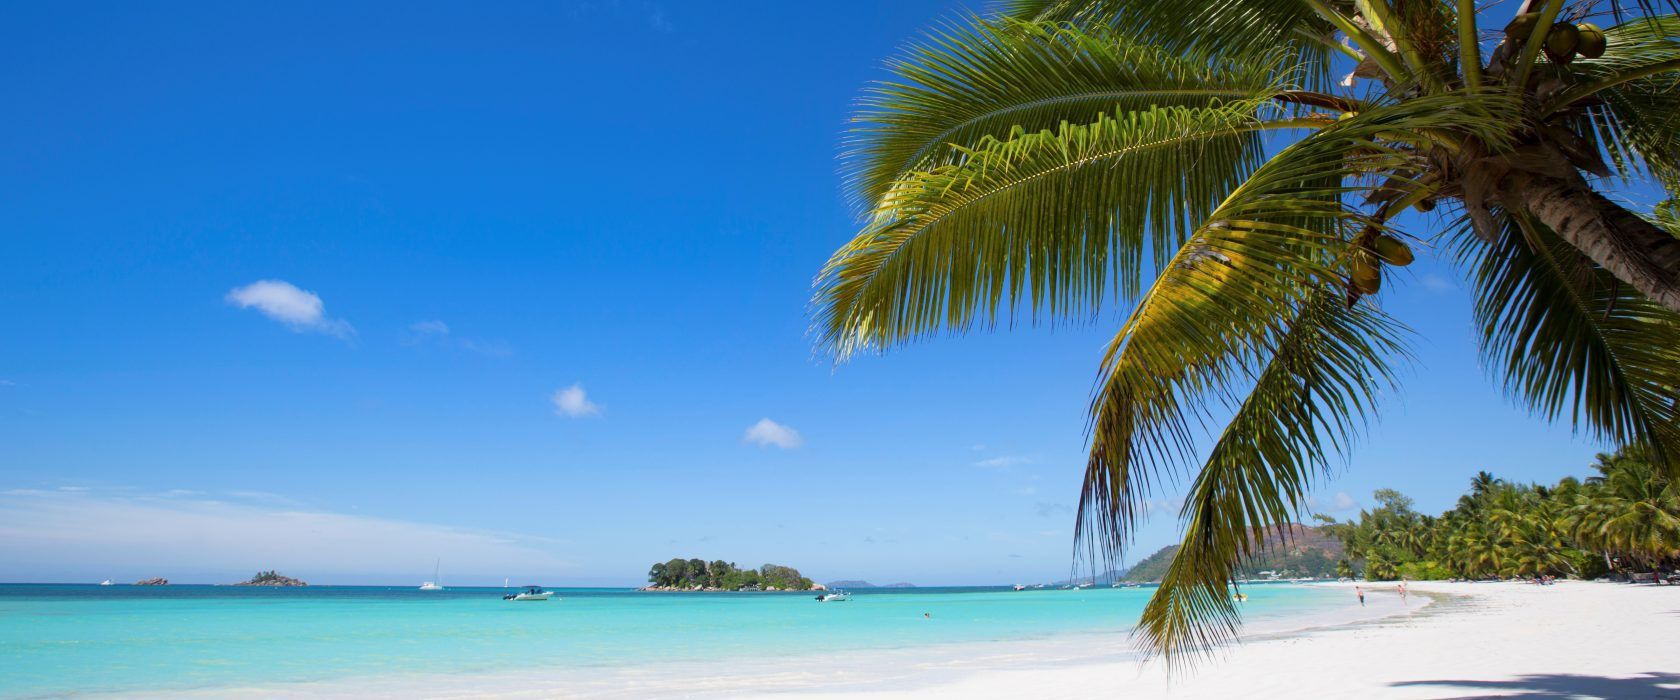 A Beach With Overhanging Palm Trees